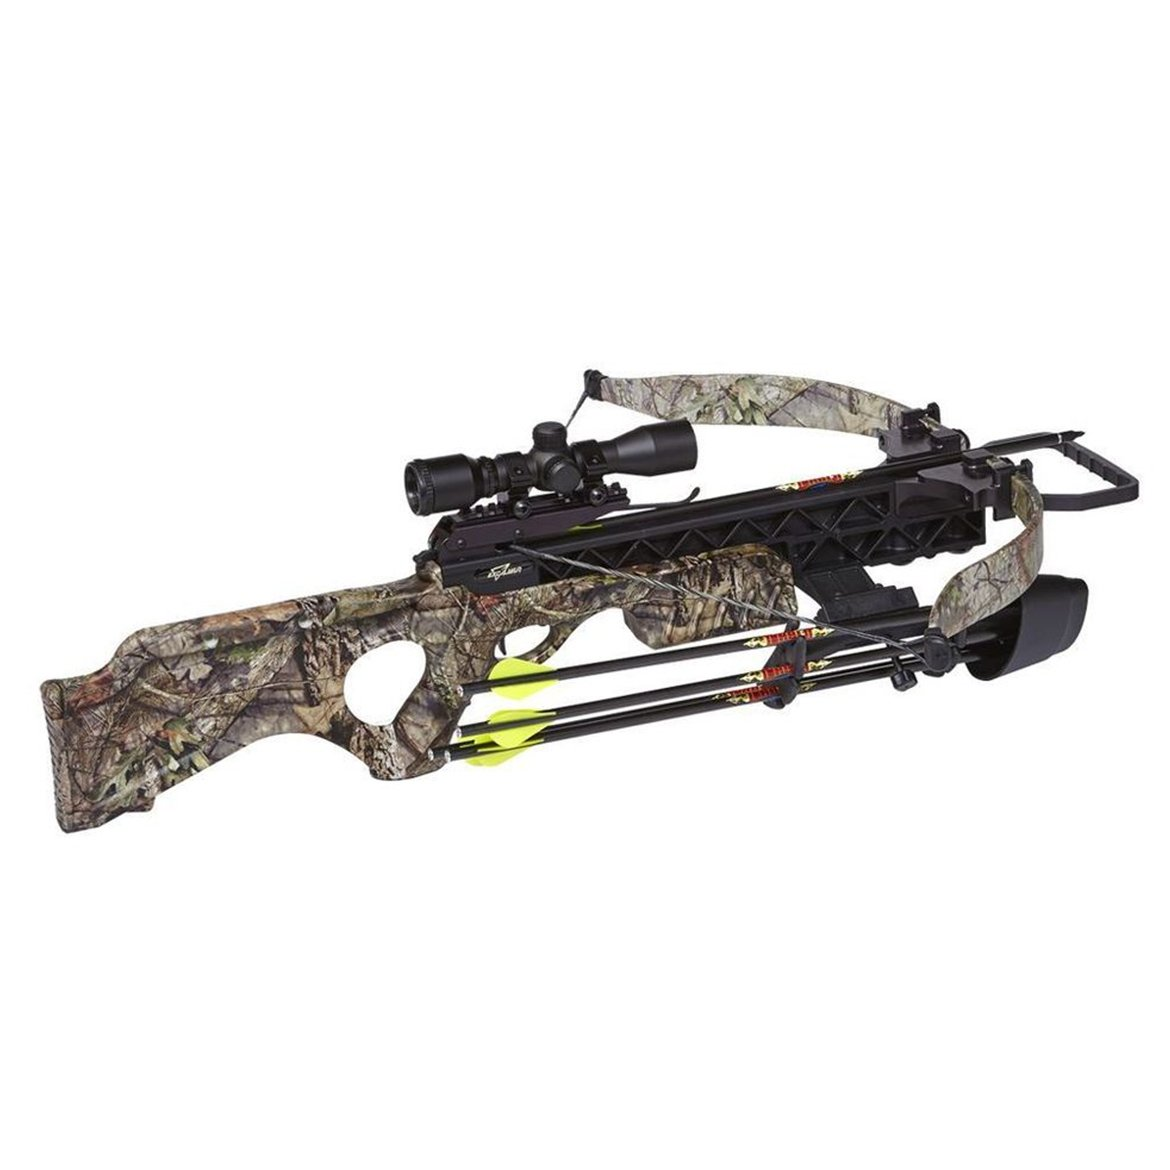 Top 10 Best Crossbow (2019 Review & Buying Guide) 2